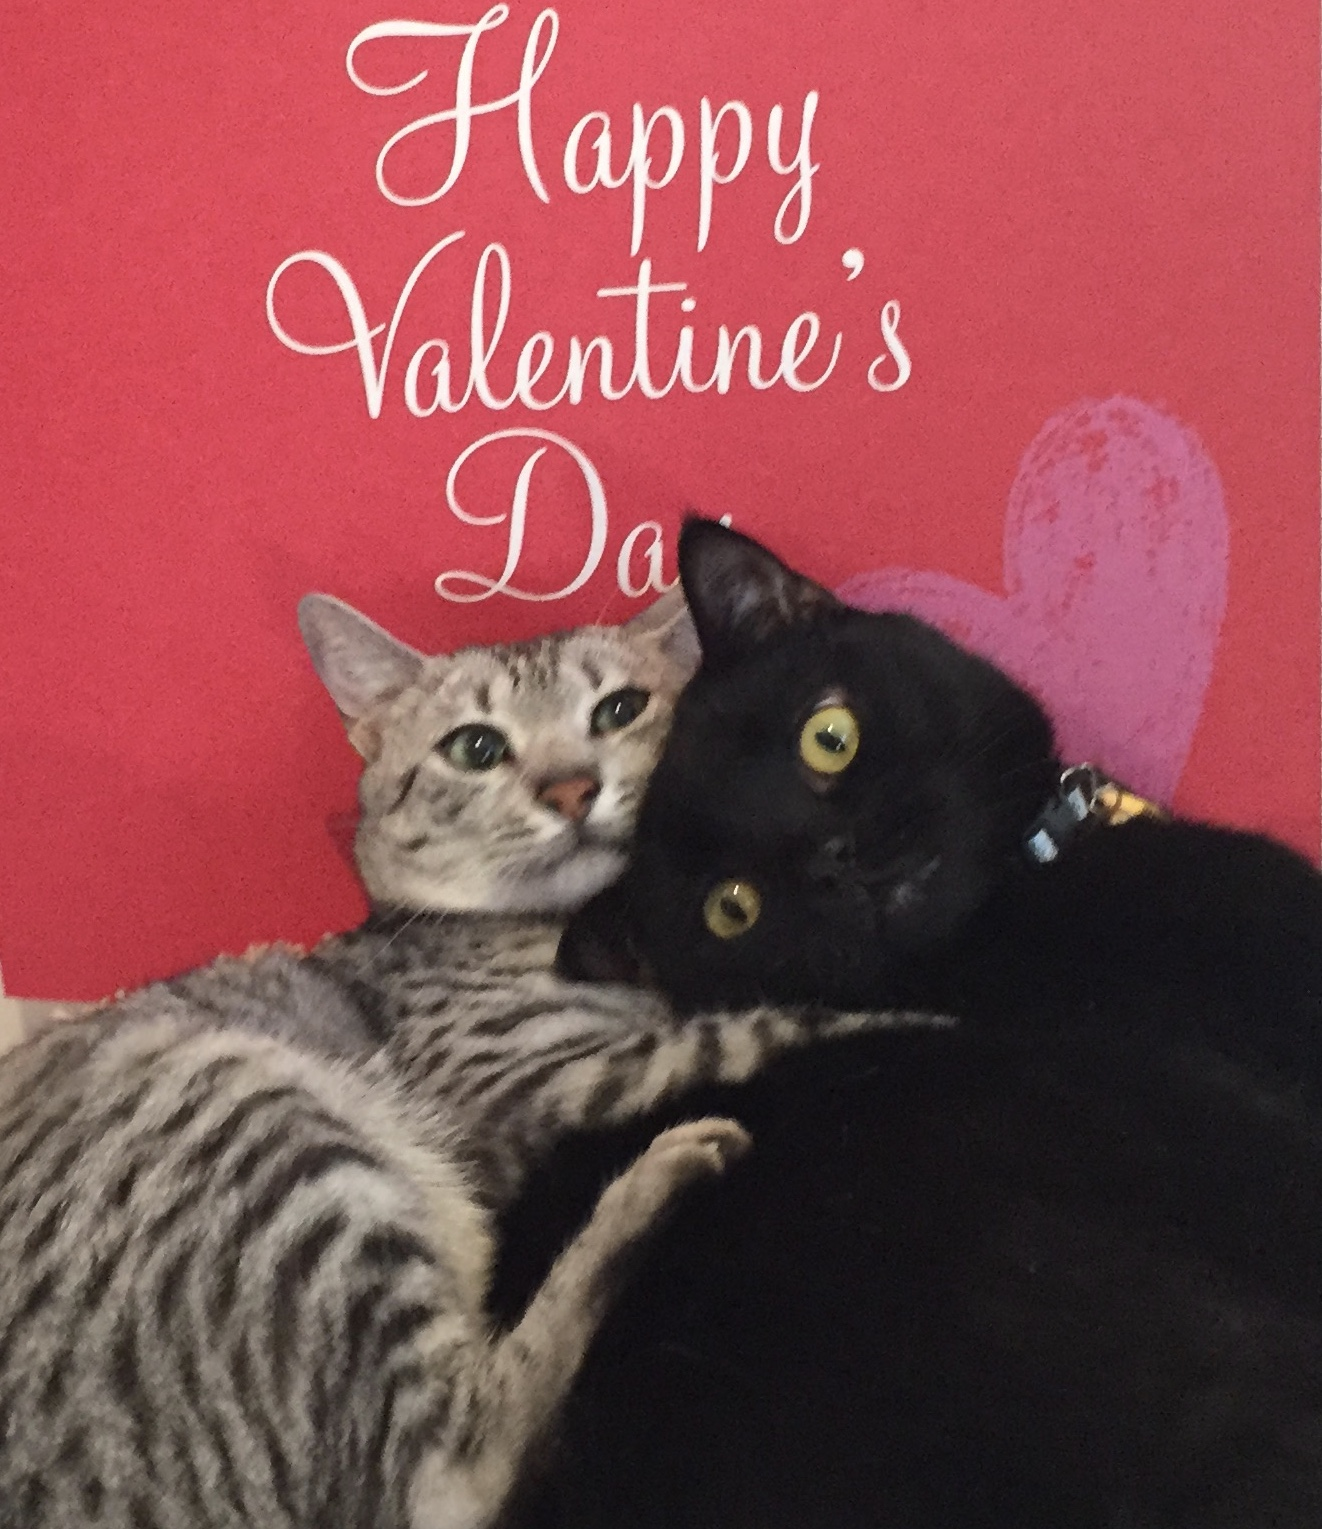 Catnip Toys For Valentine S Day : And a merry valentines day to all cat authors